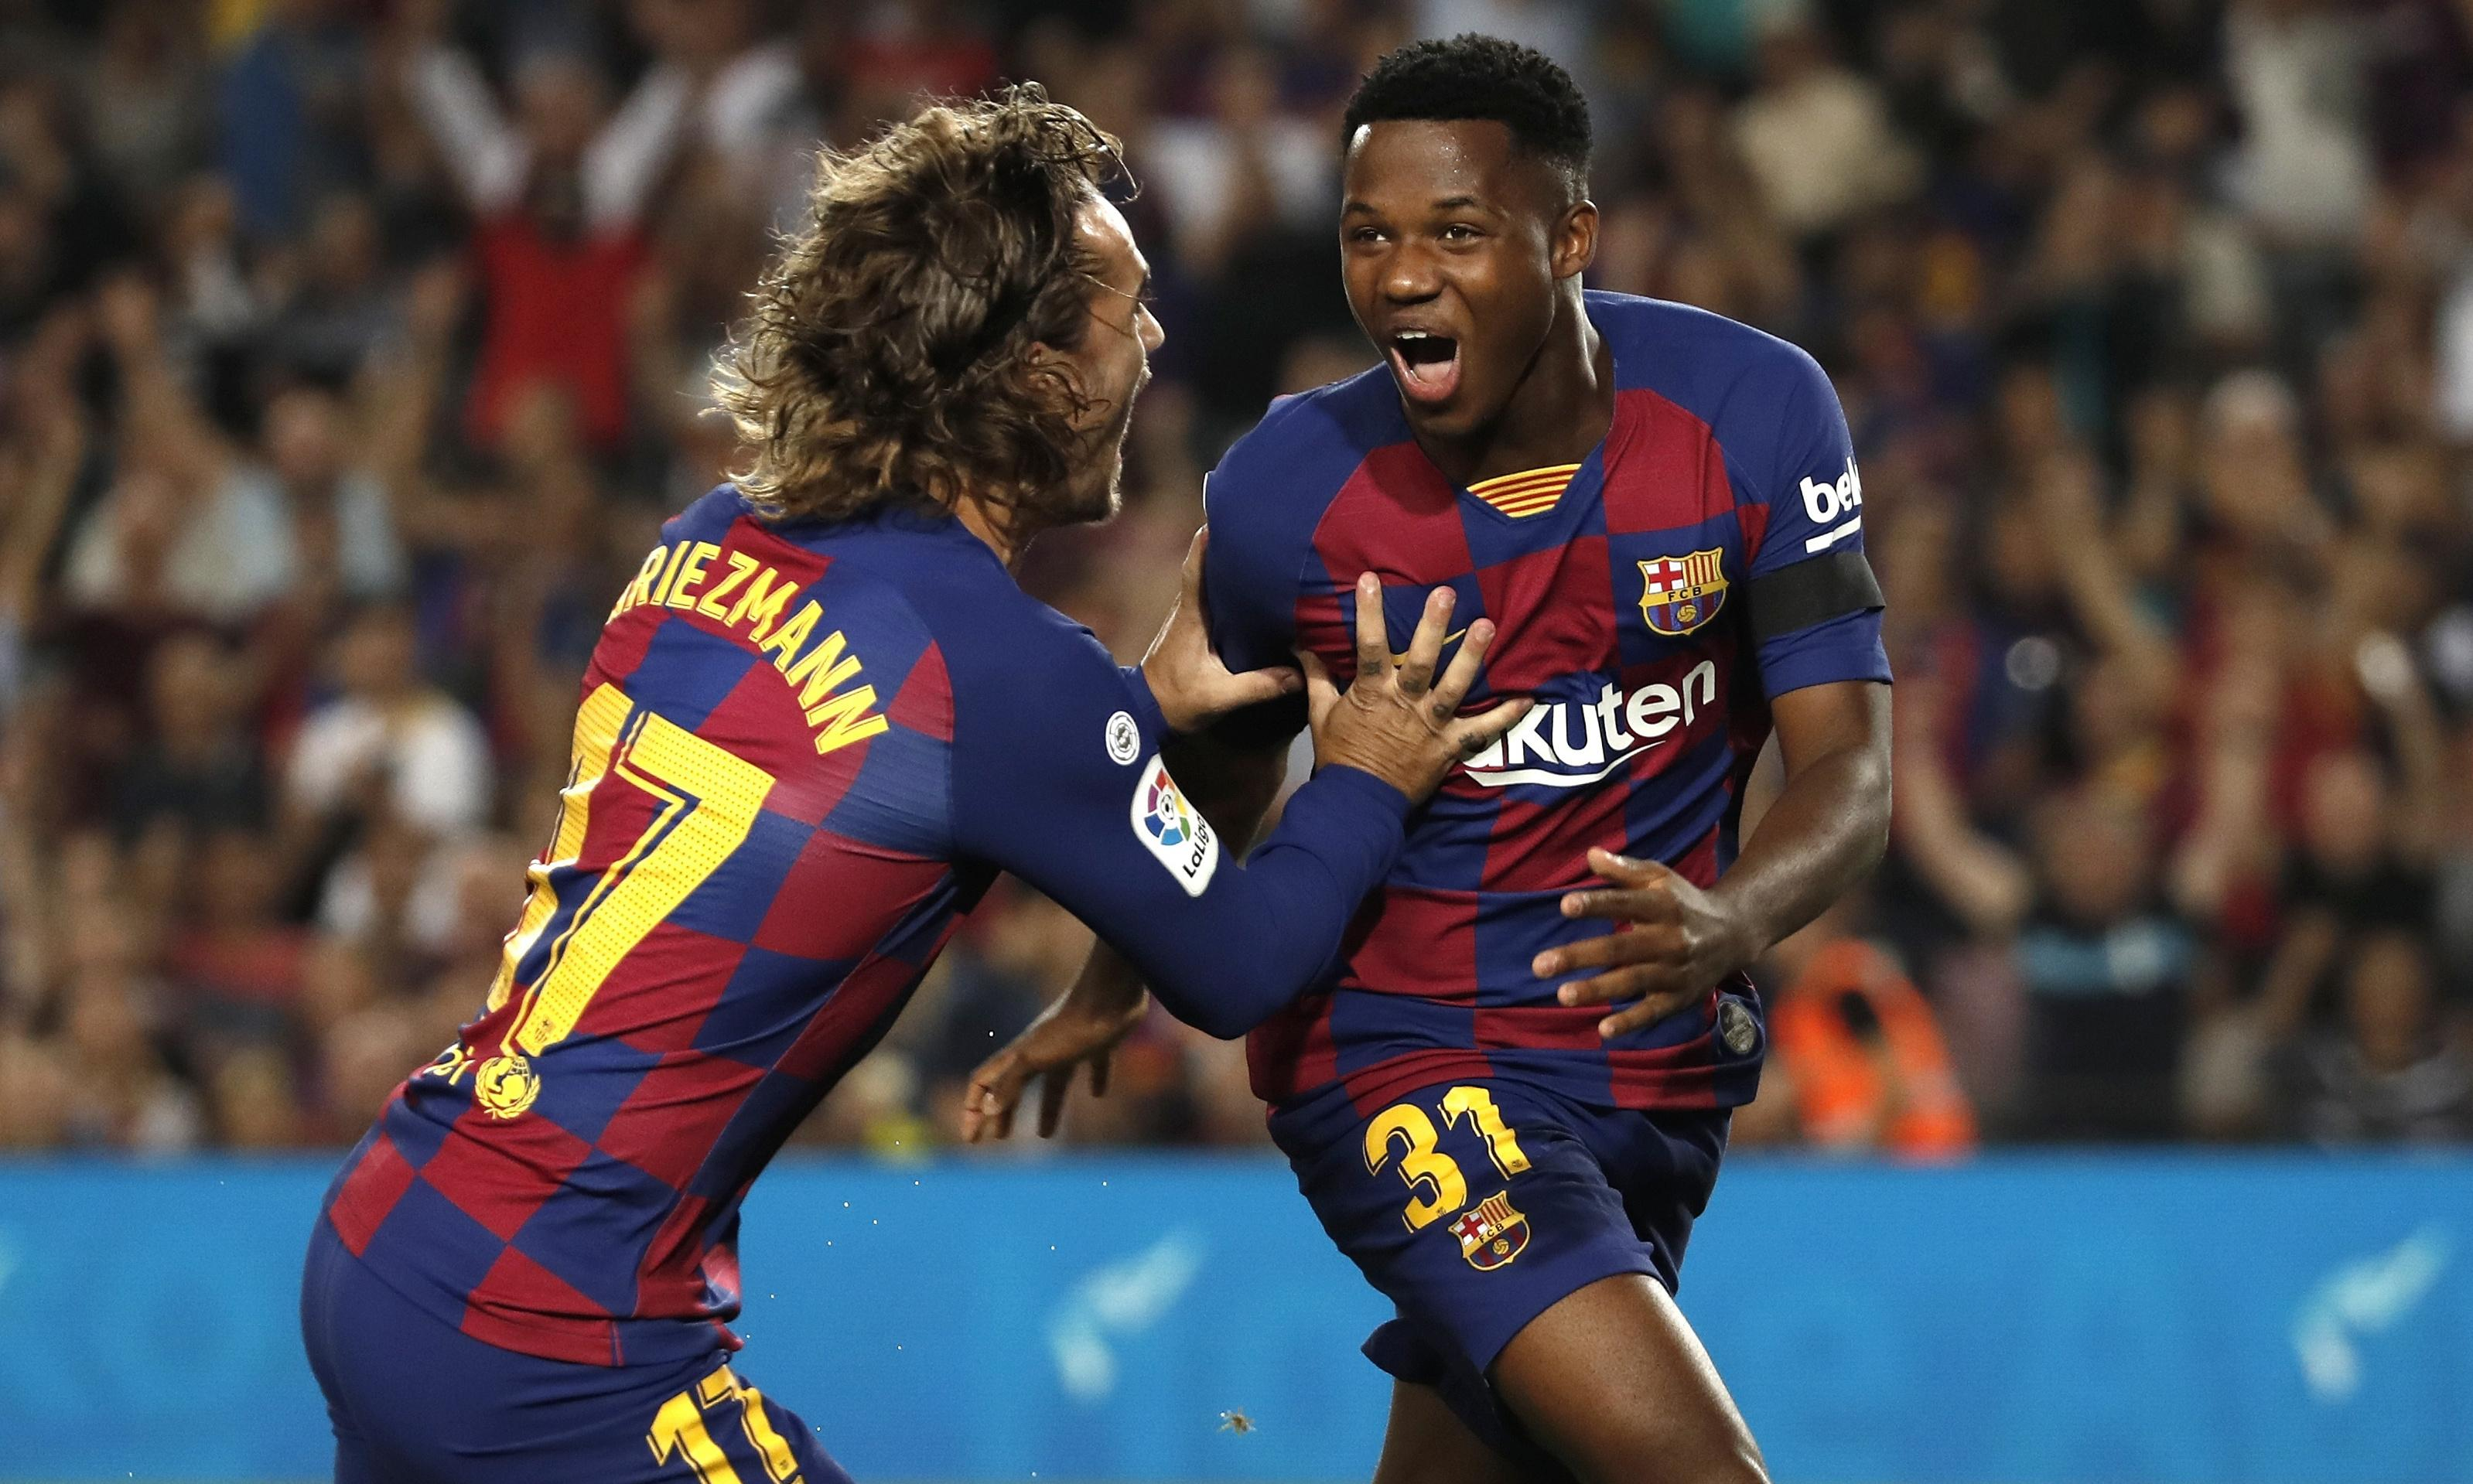 European roundup: Sixteen-year-old Ansu Fati stars in Barcelona win